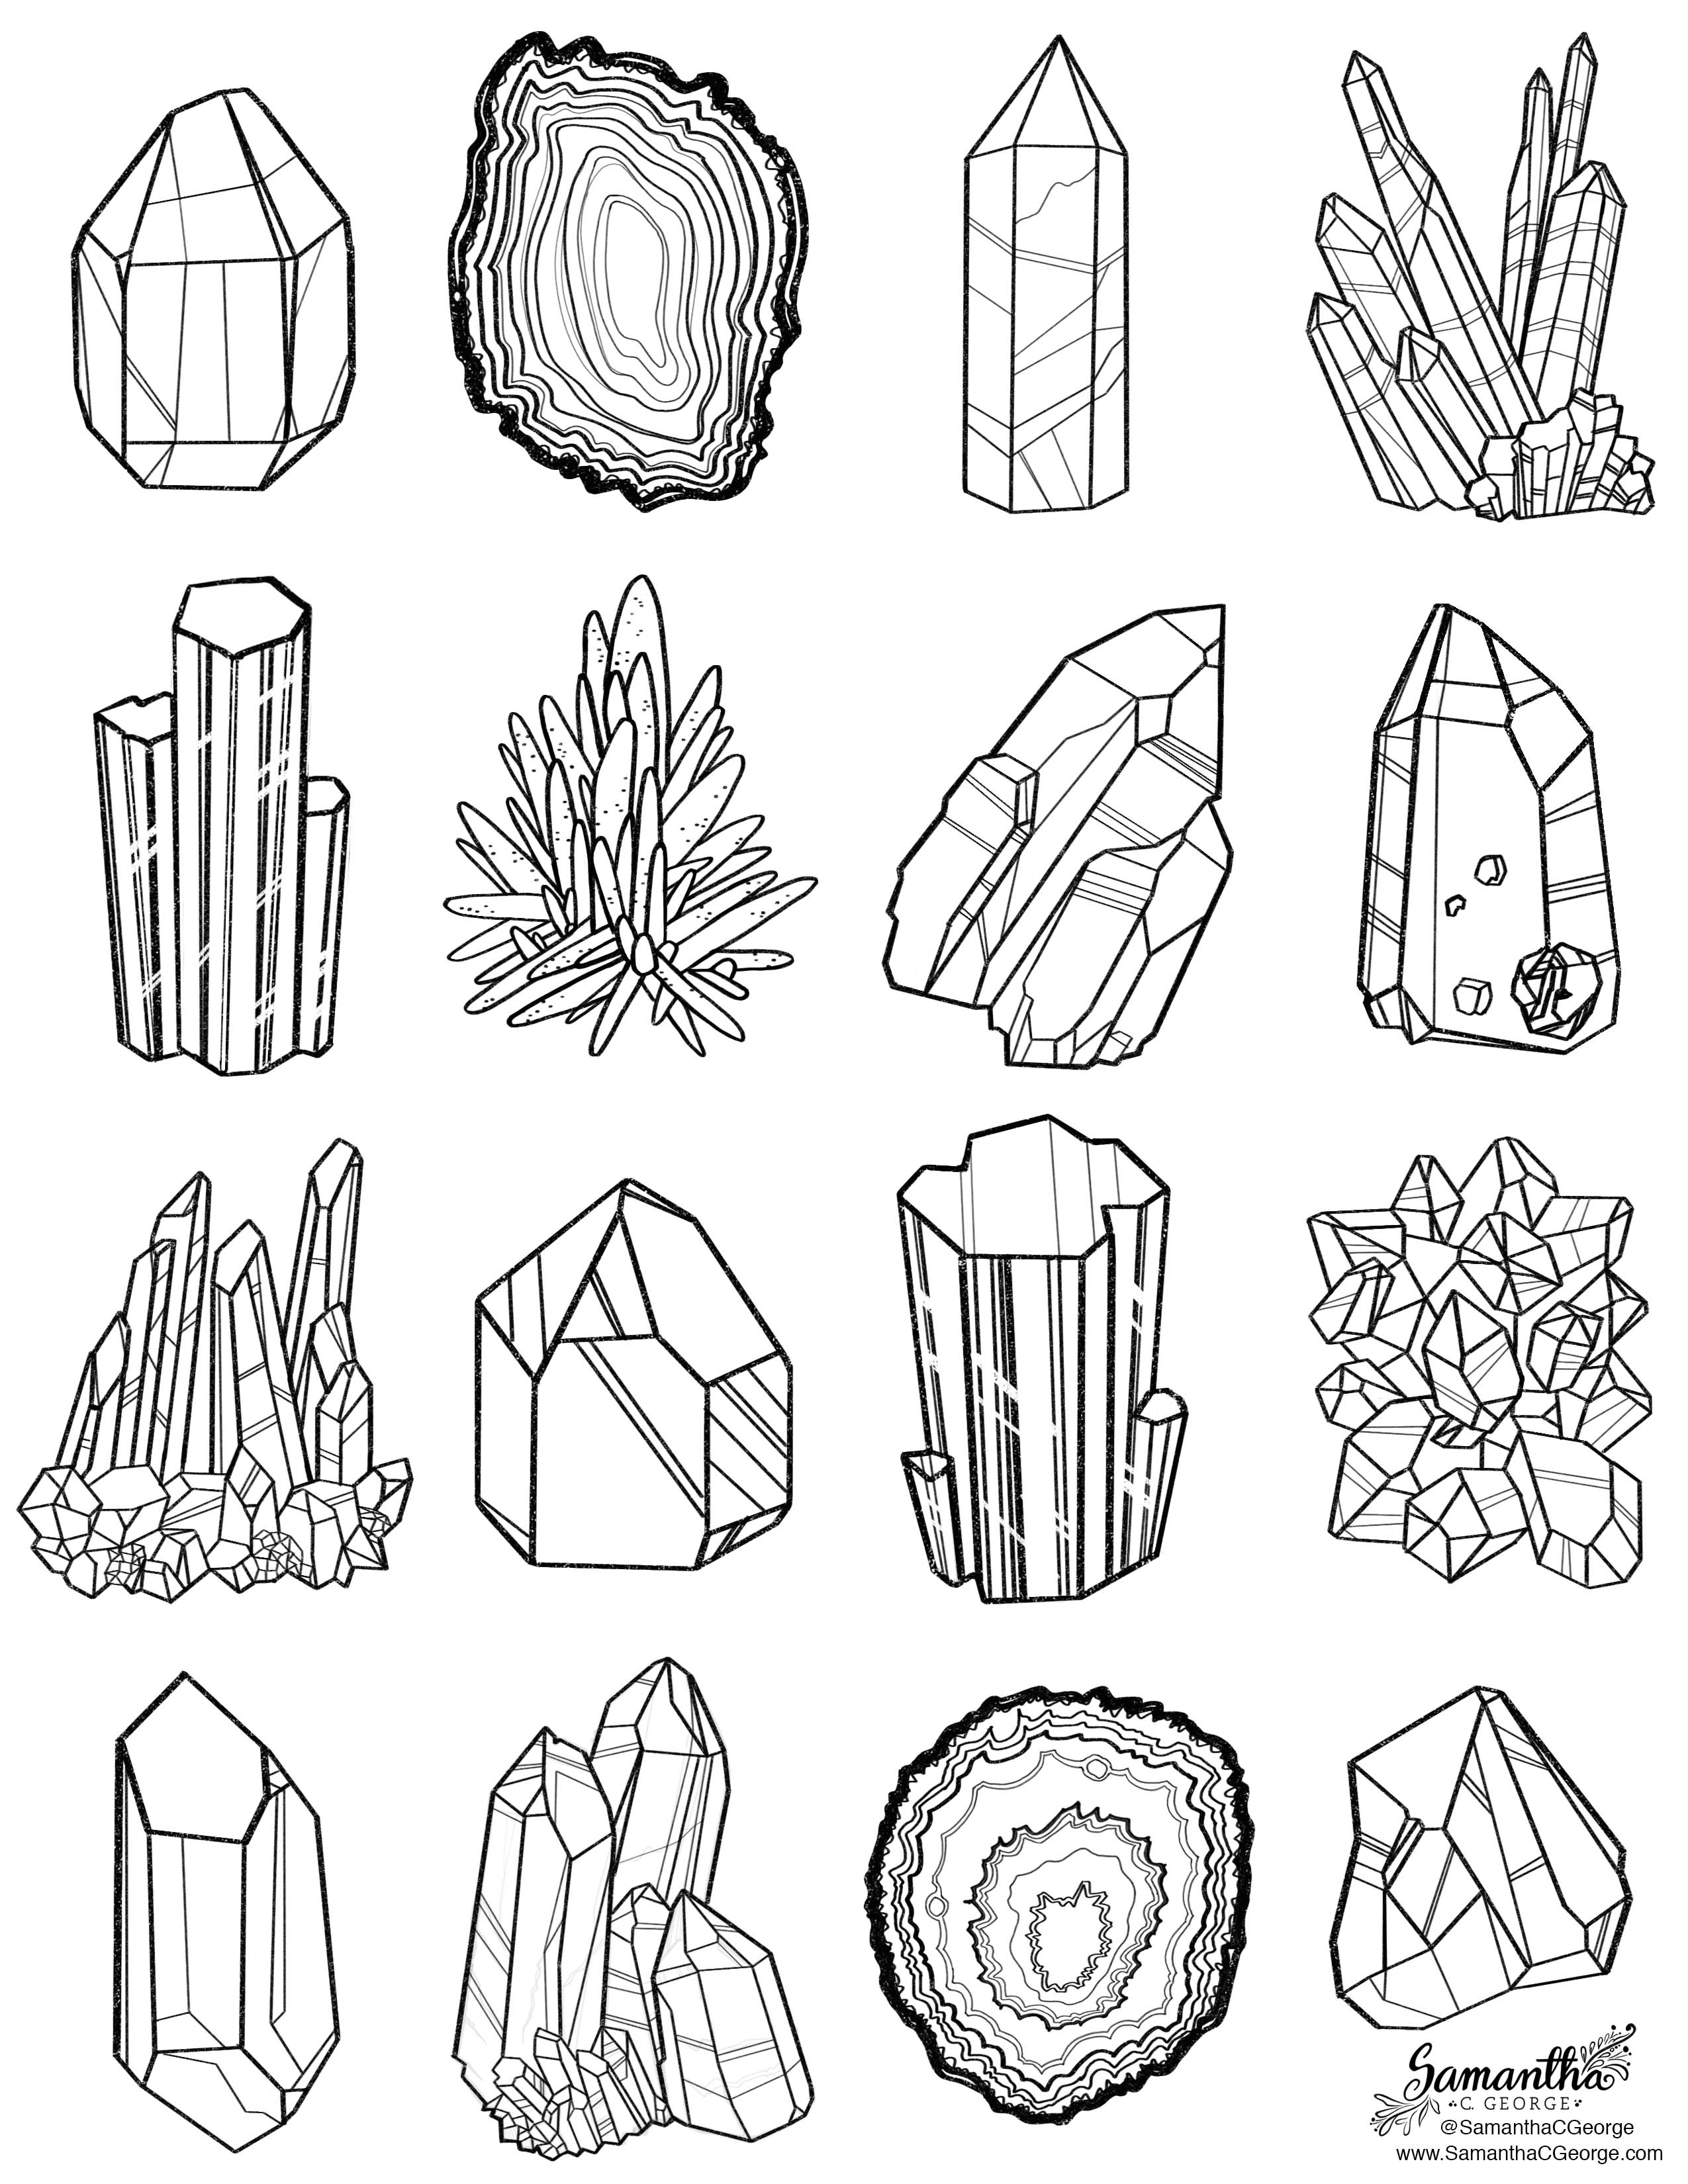 free gem and mineral coloring page - Watercolor Pages